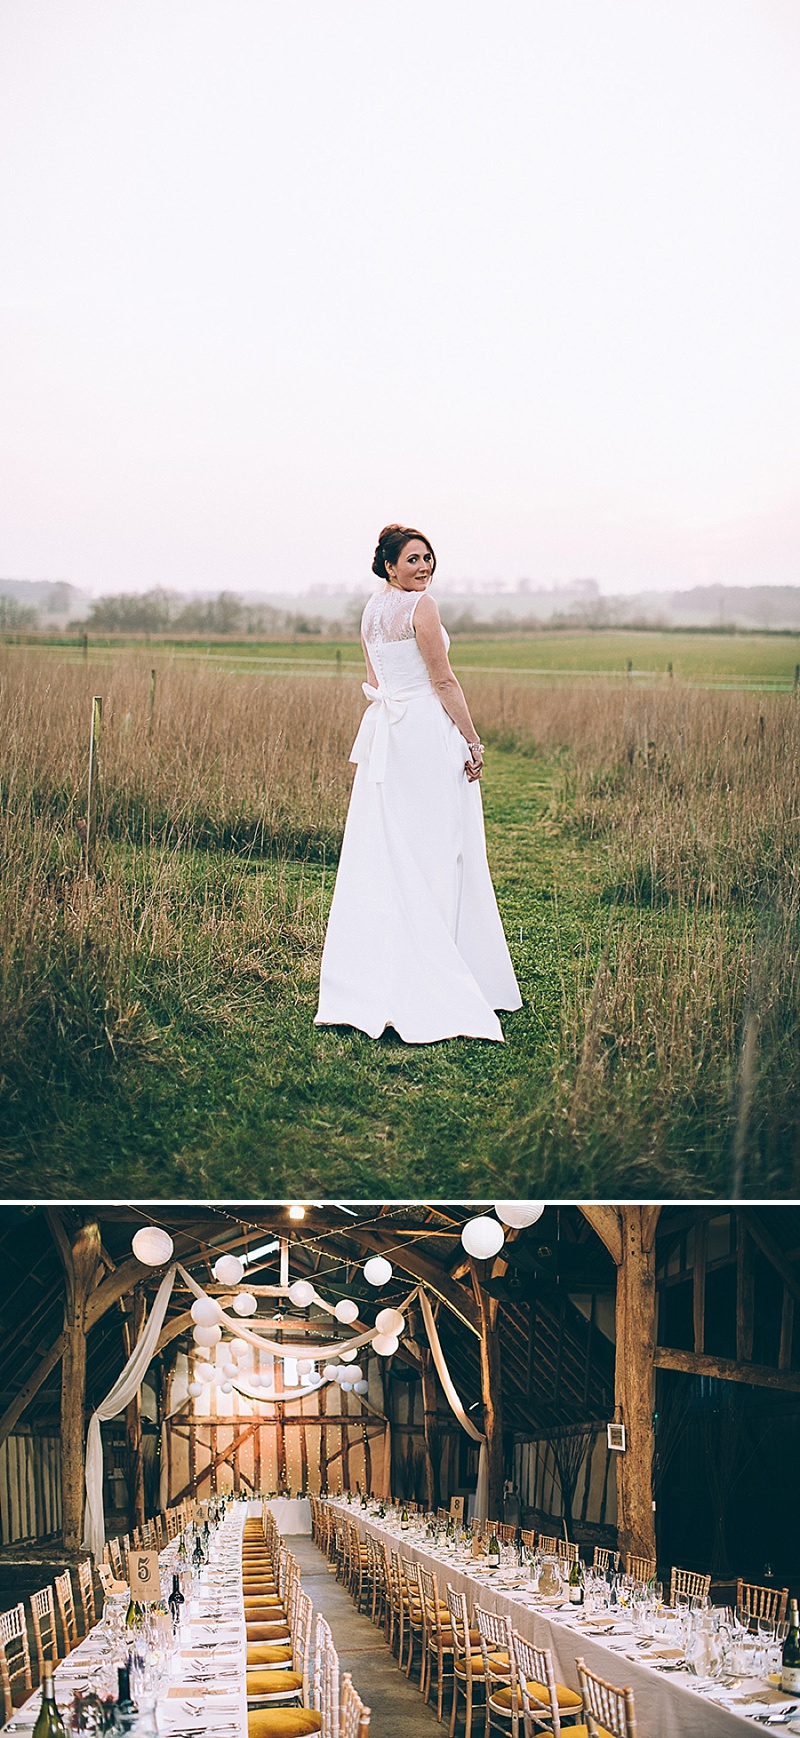 A wedding at Alpheton Hall Barns in Suffolk with a Jesus Peiro ballgown dress navy bridesmaids and DIY_0150